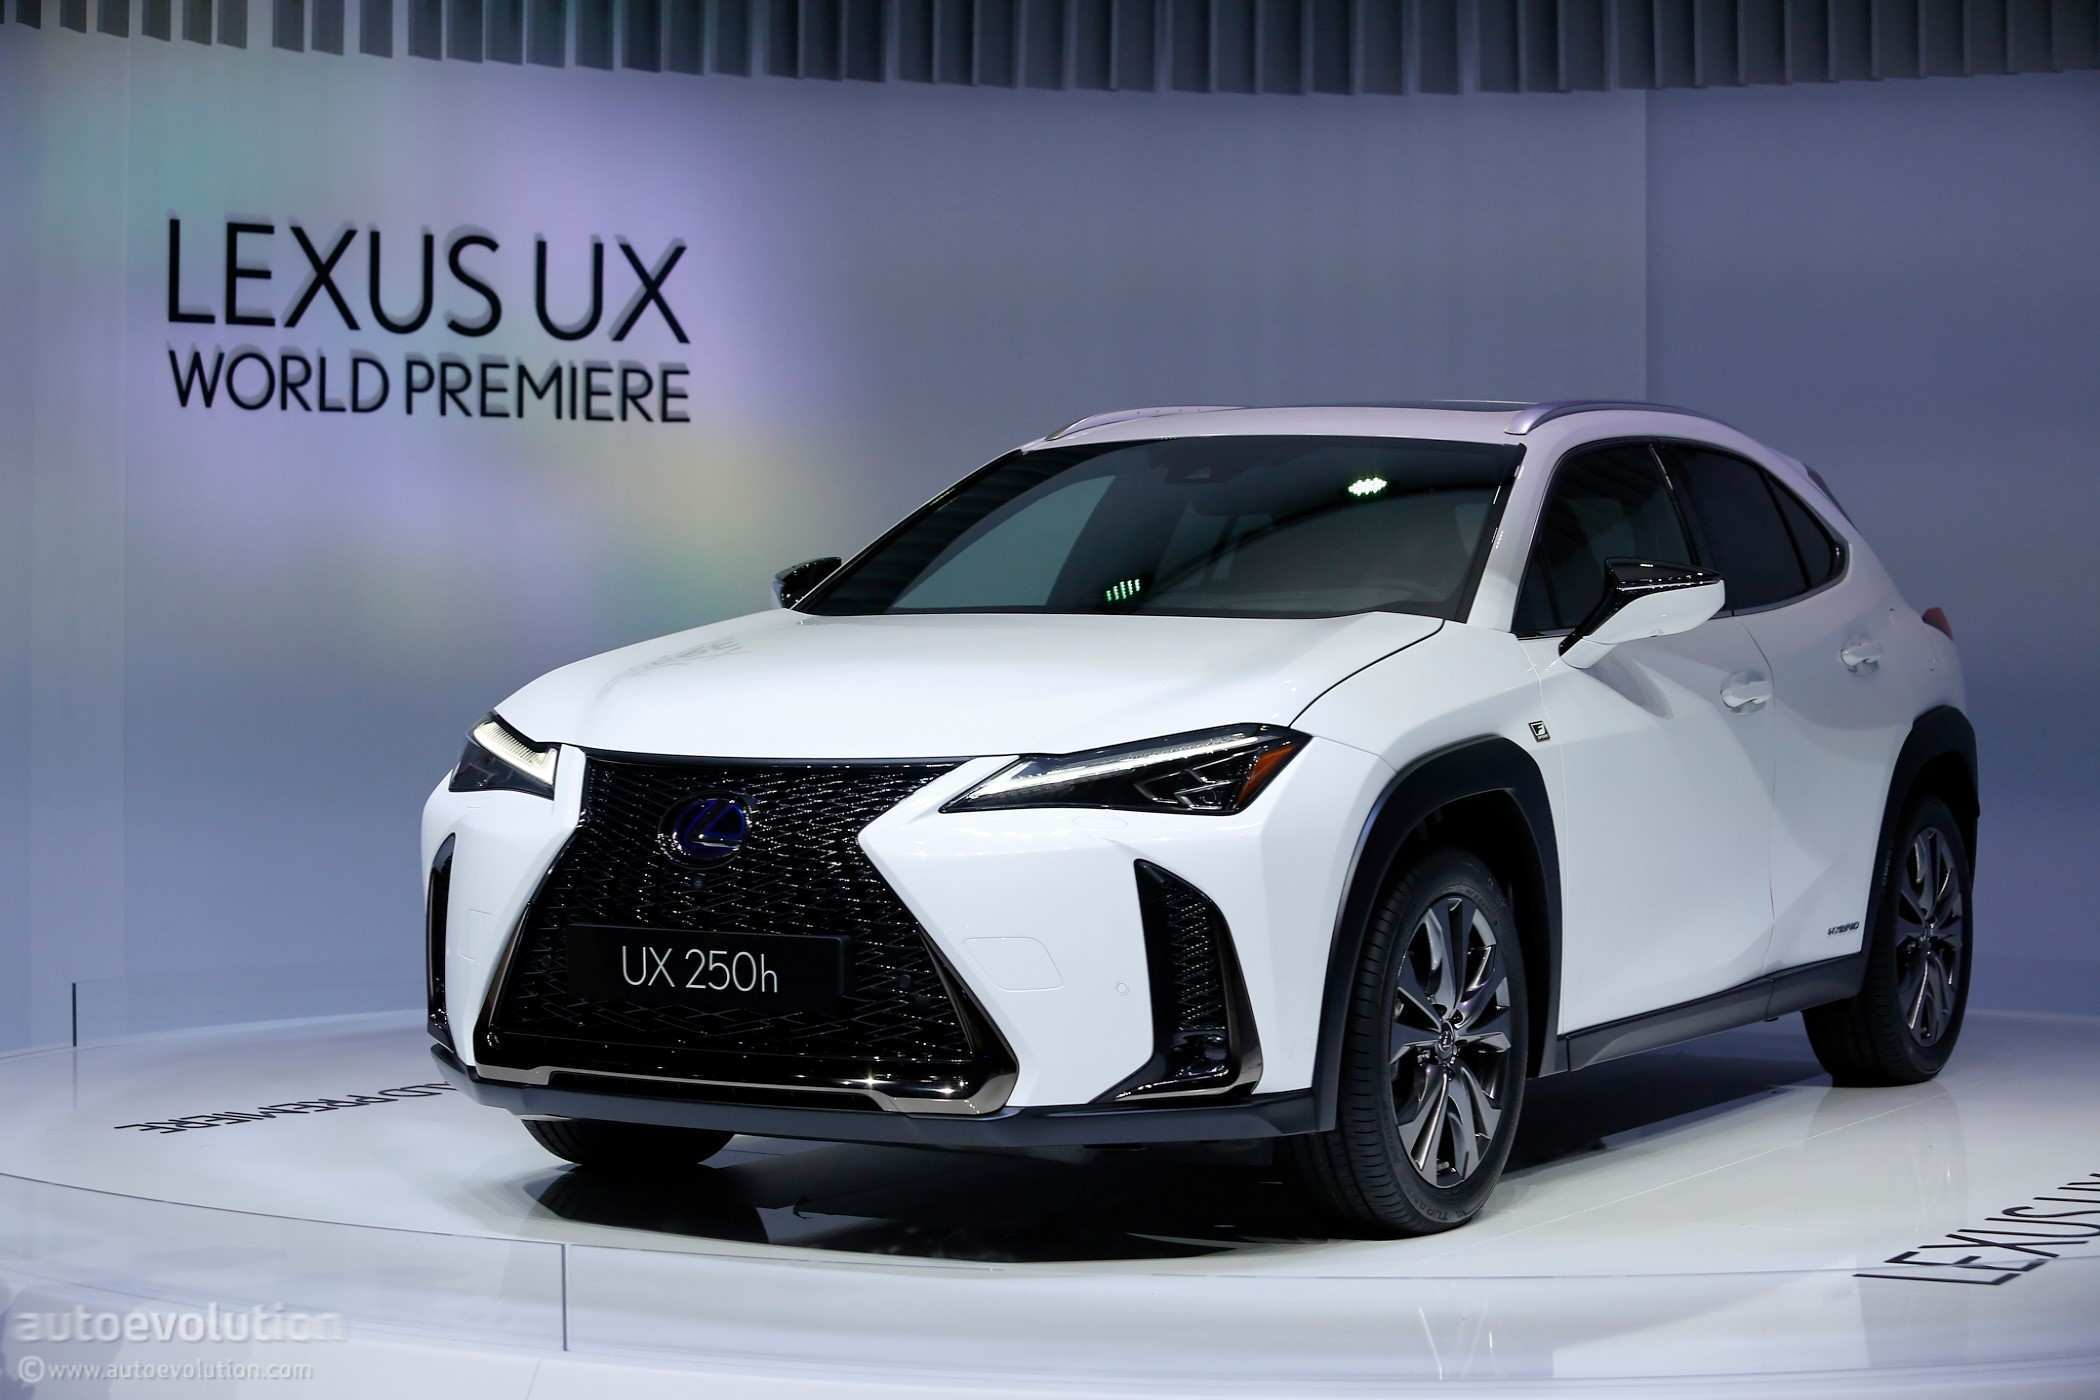 16 Best Lexus Ux Hybrid 2020 Price